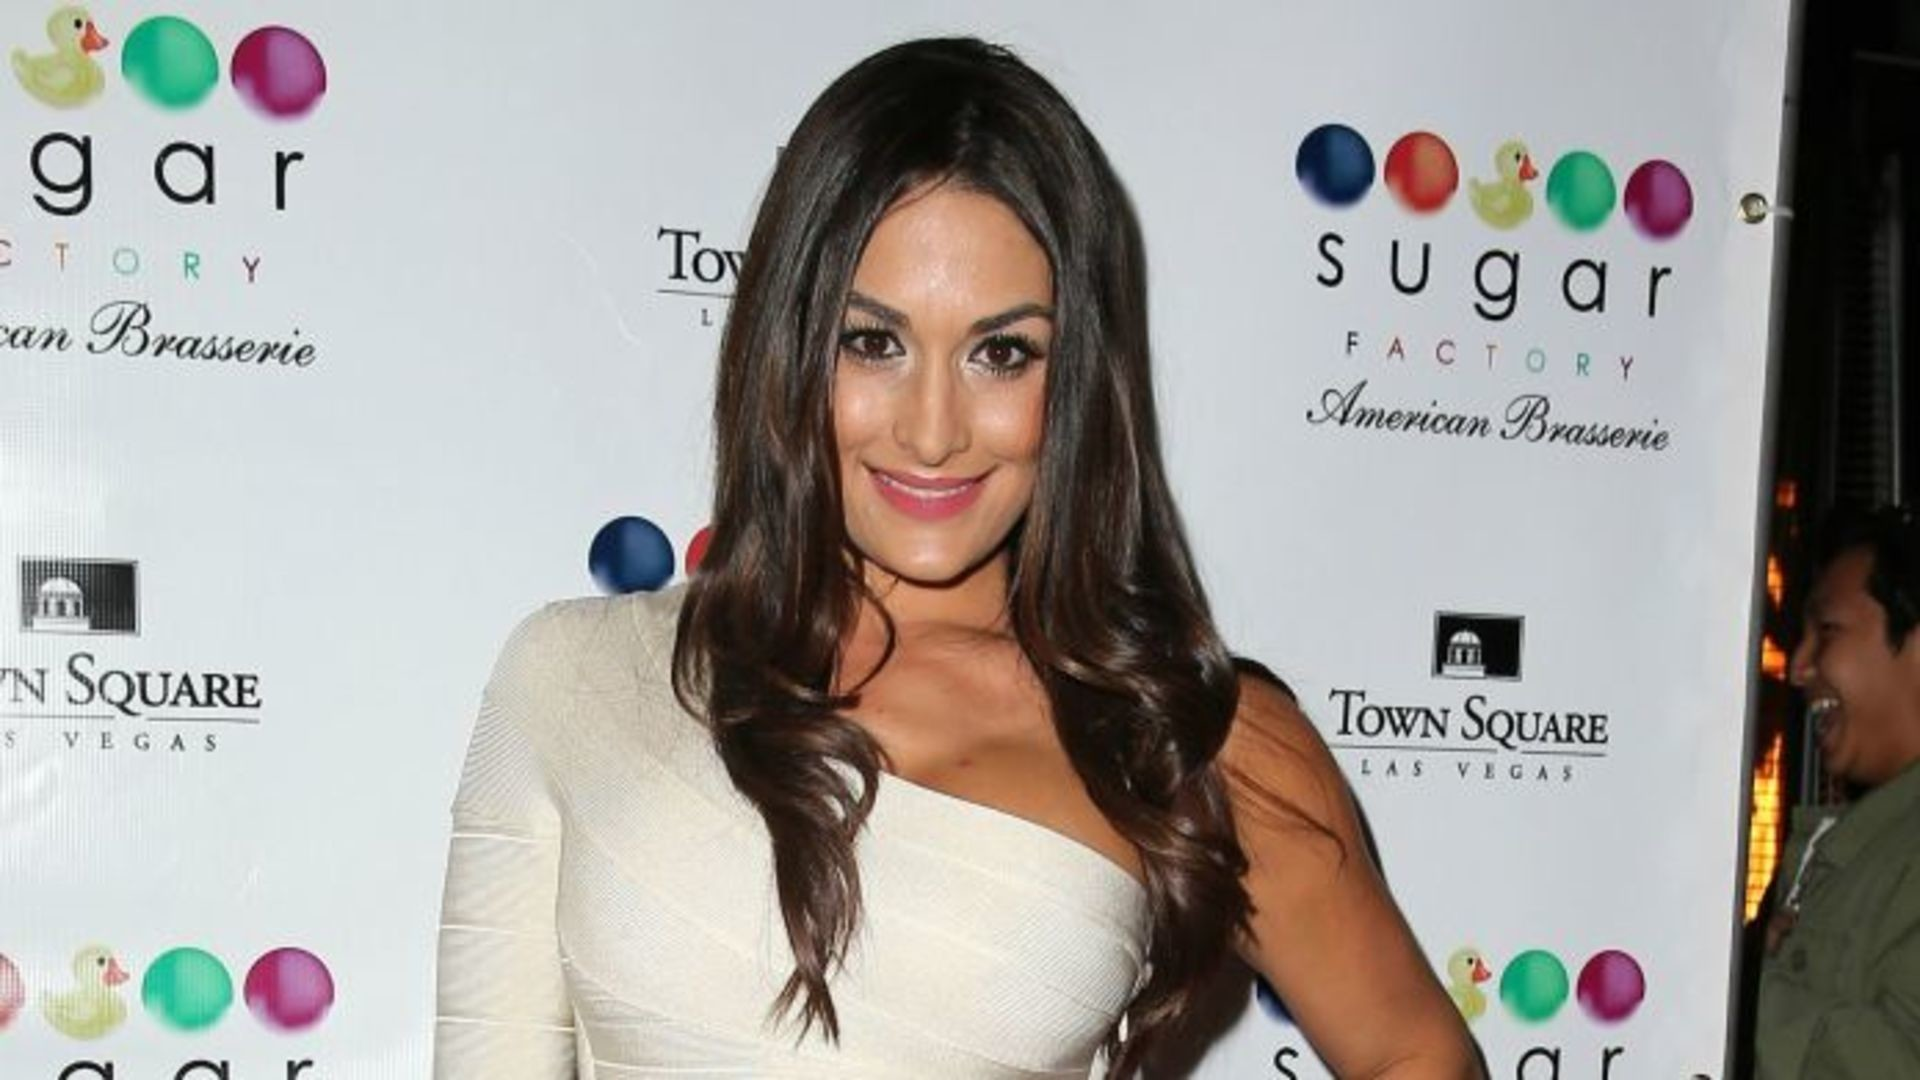 1920x1080 Nikki Bella says she's successful because she's more than a pretty face